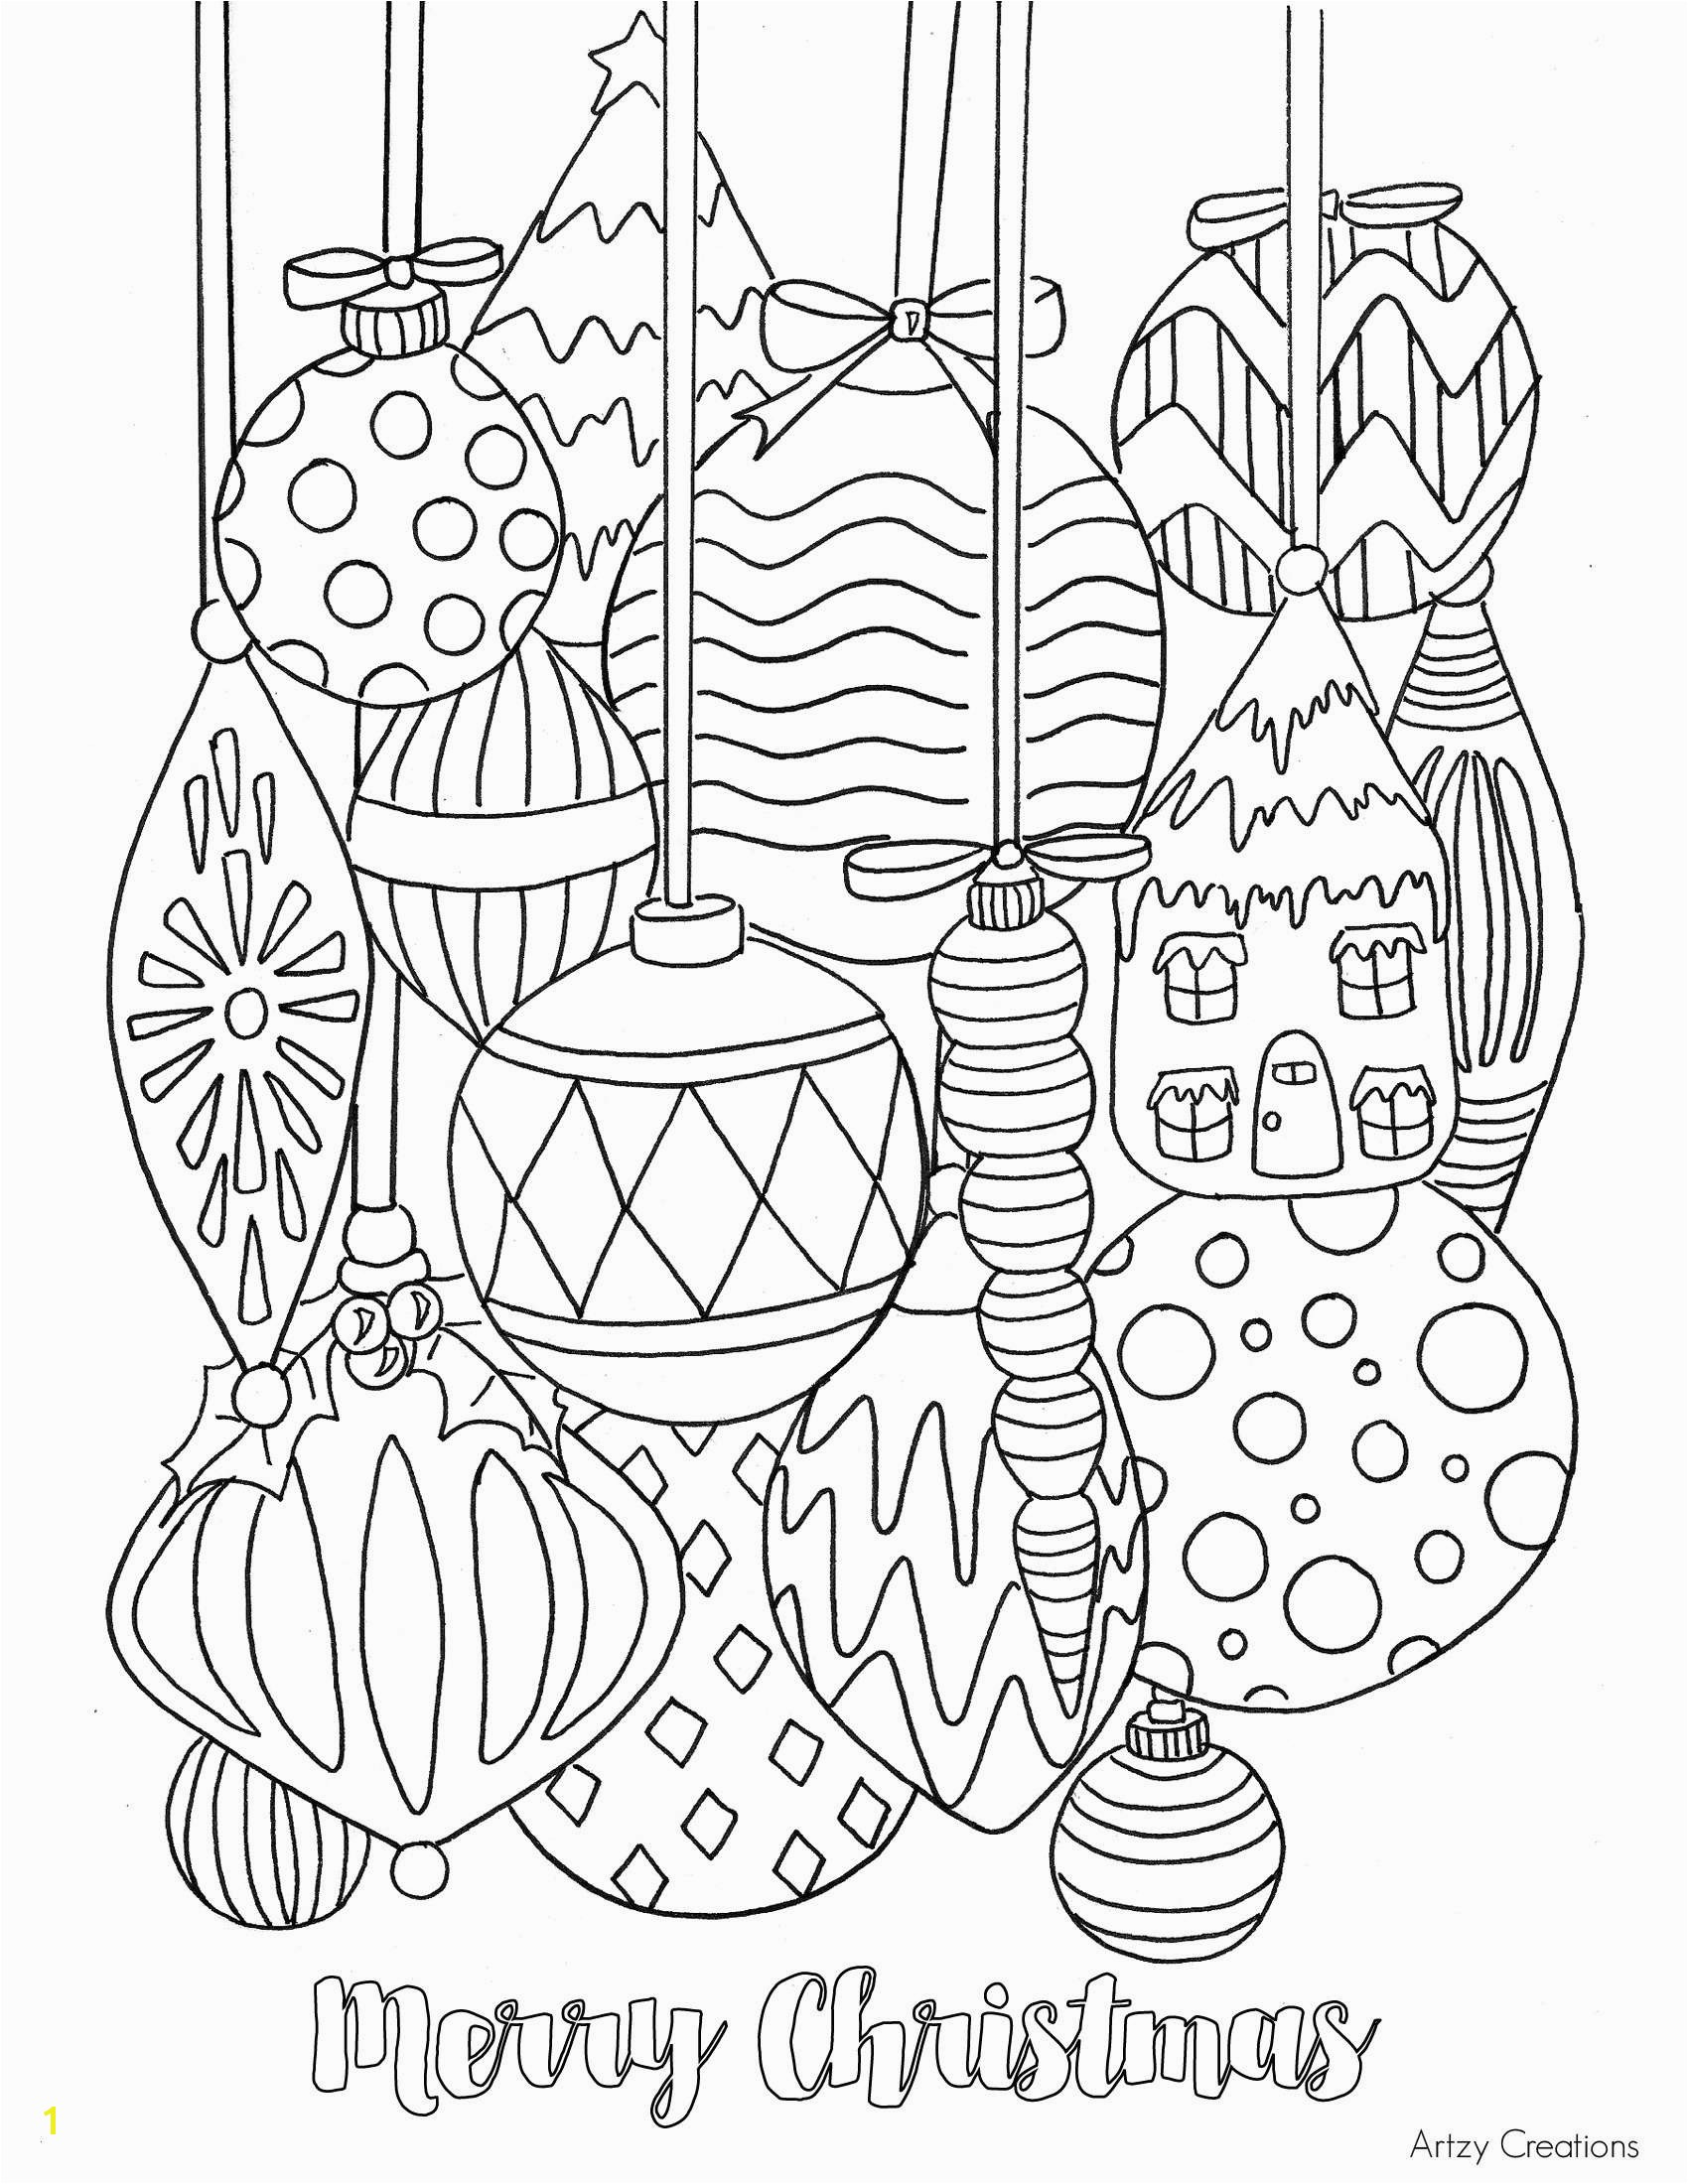 Free Printable Christmas Coloring Pages oriental Trading Christmas Coloring Pages New Christmas Coloring Pages Unique Cool